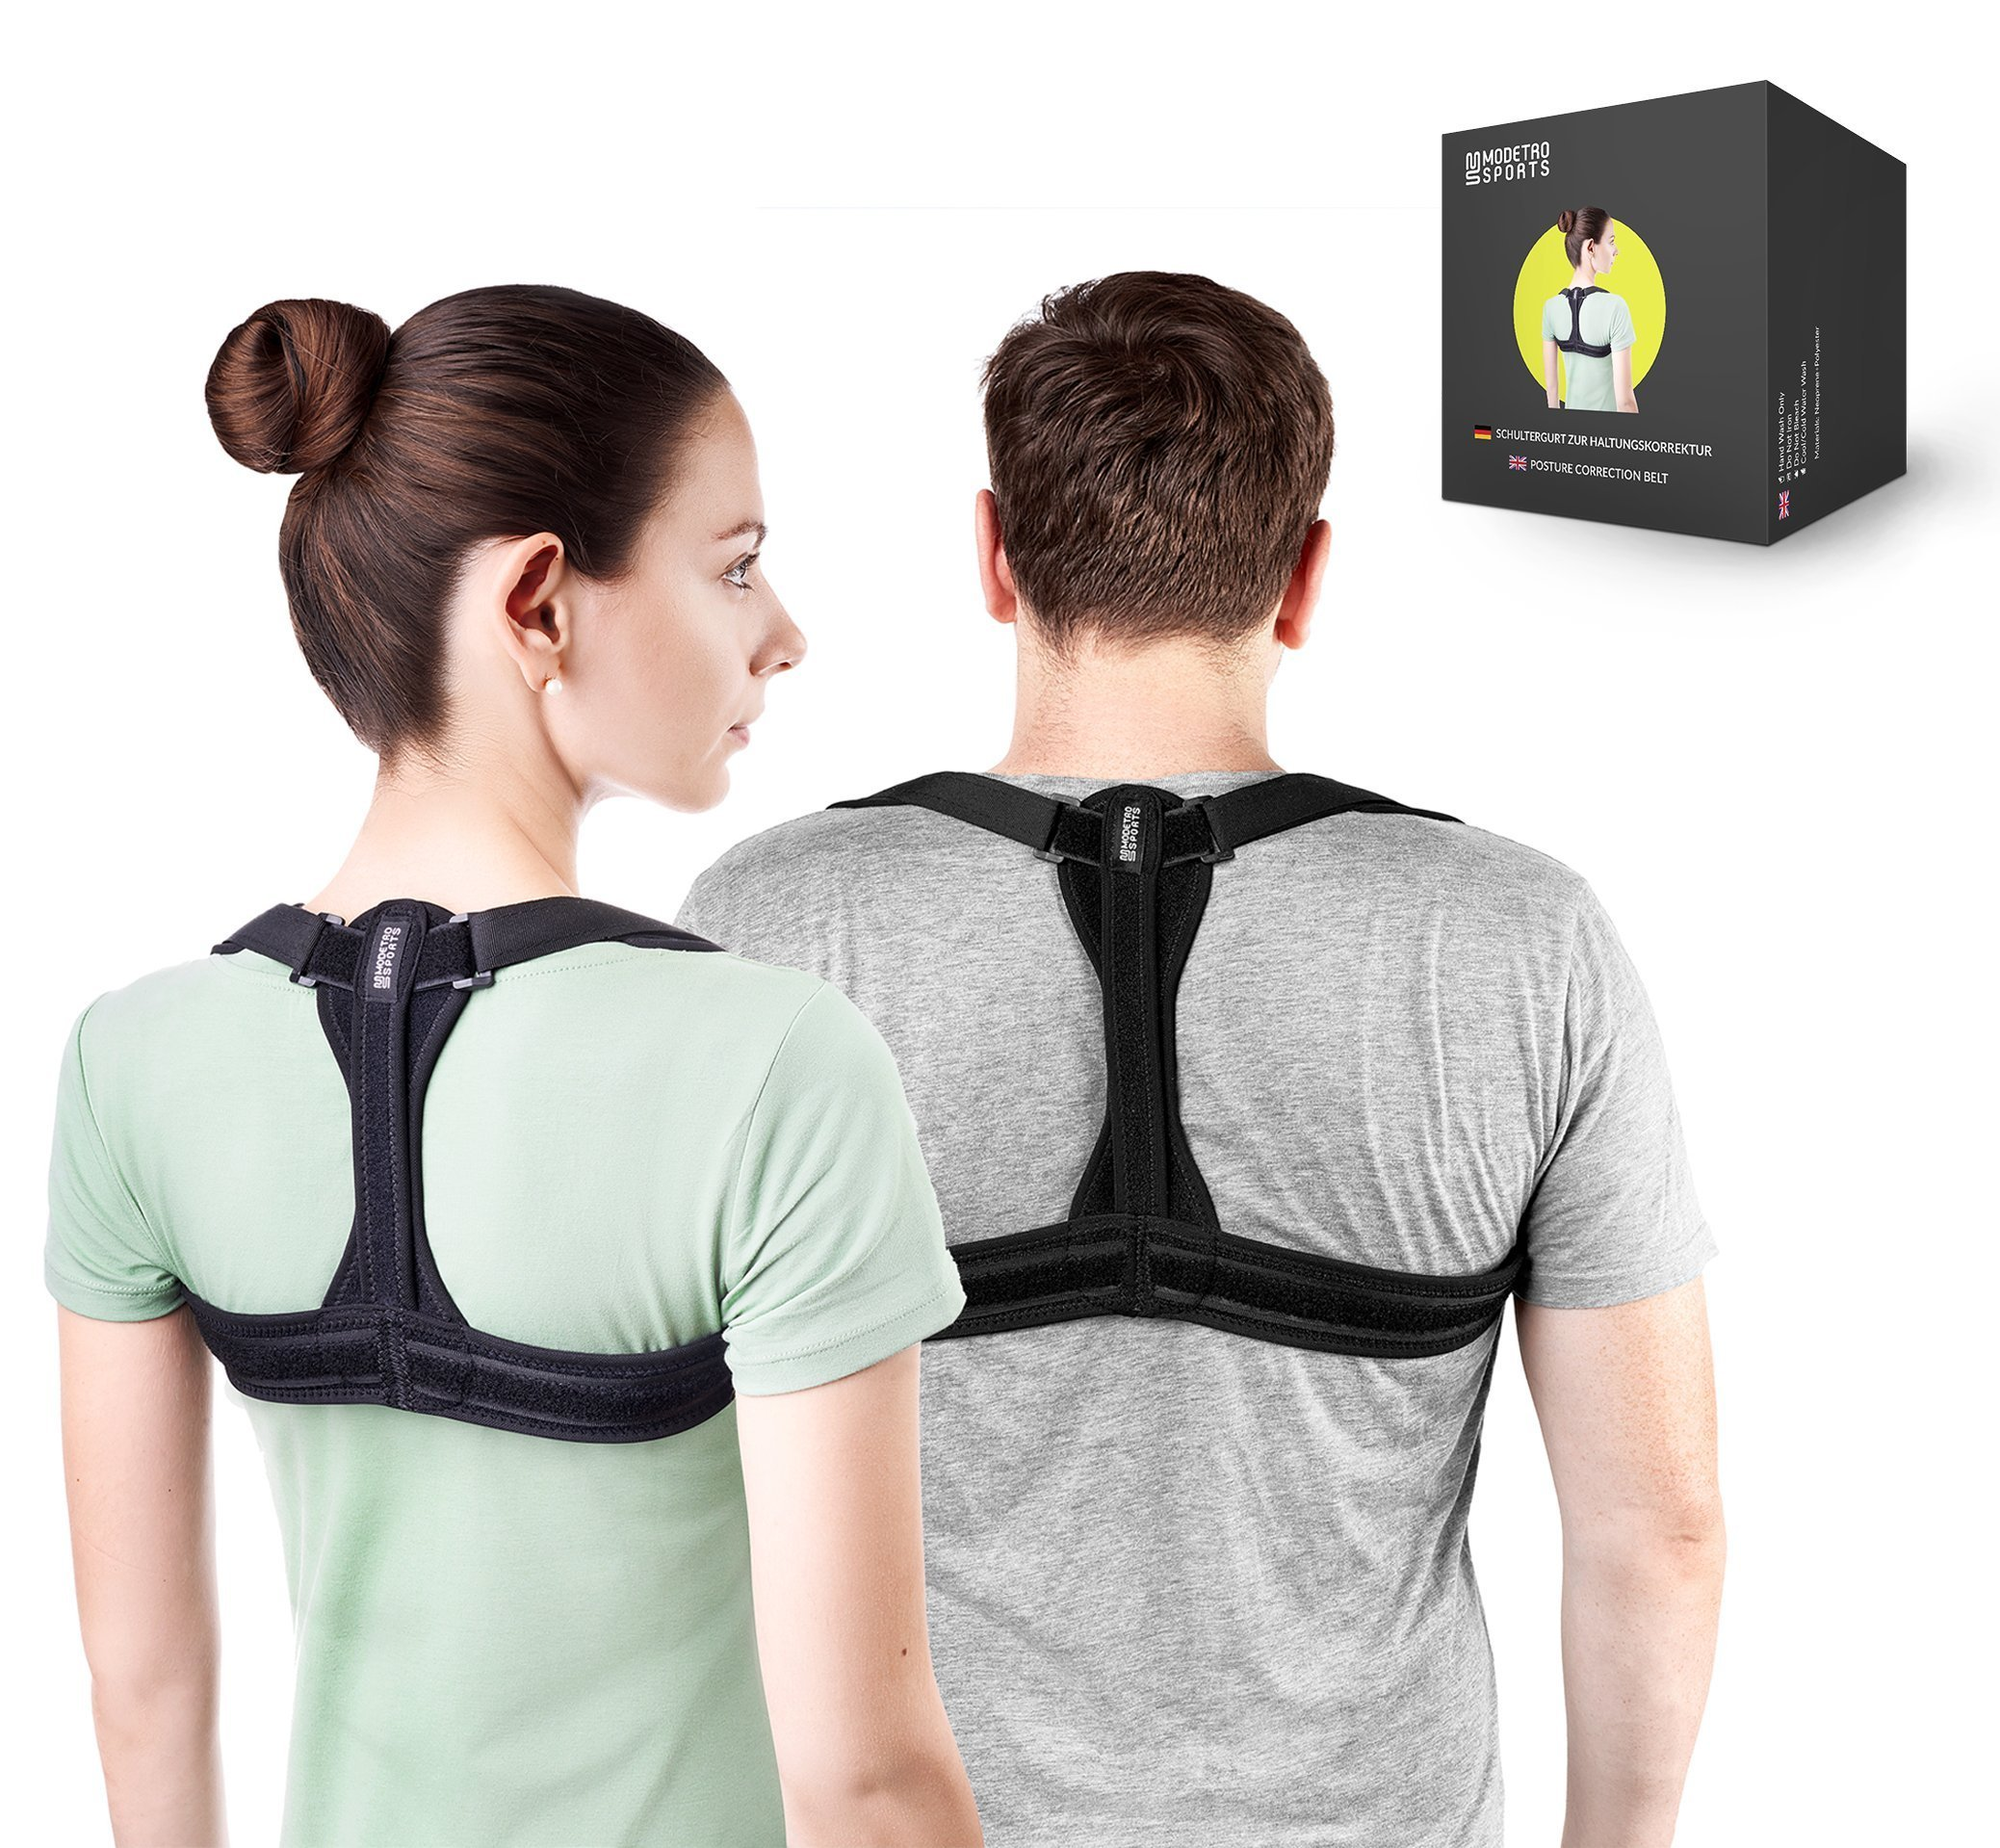 477a3980134 Modetro Sports Posture Corrector Spinal Support -Physical Therapy Posture  Brace for Men or Women -